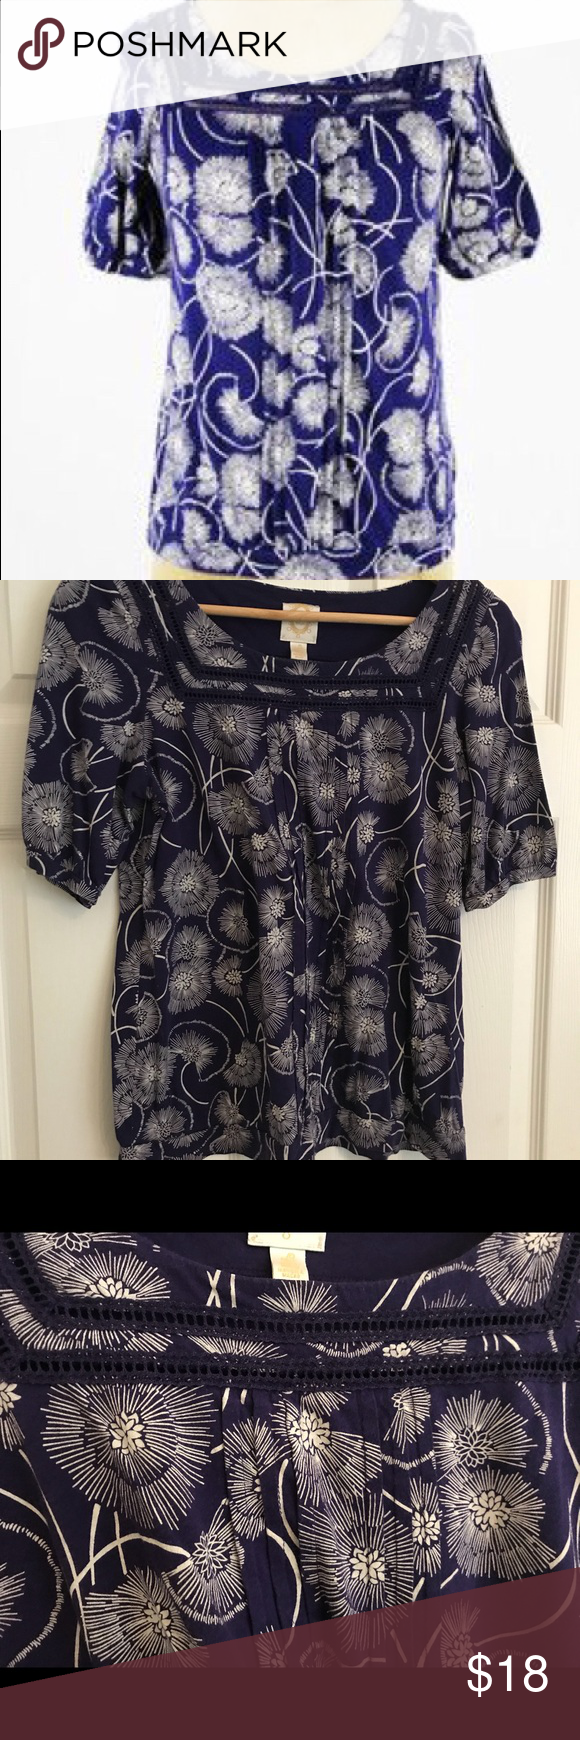 f92273c157f38 Anthropologie Ric Rac Purple & White Floral Tee Anthropologie Purple floral  top. Short sleeves. White flowers. Excellent condition. Smoke and pet free  home.